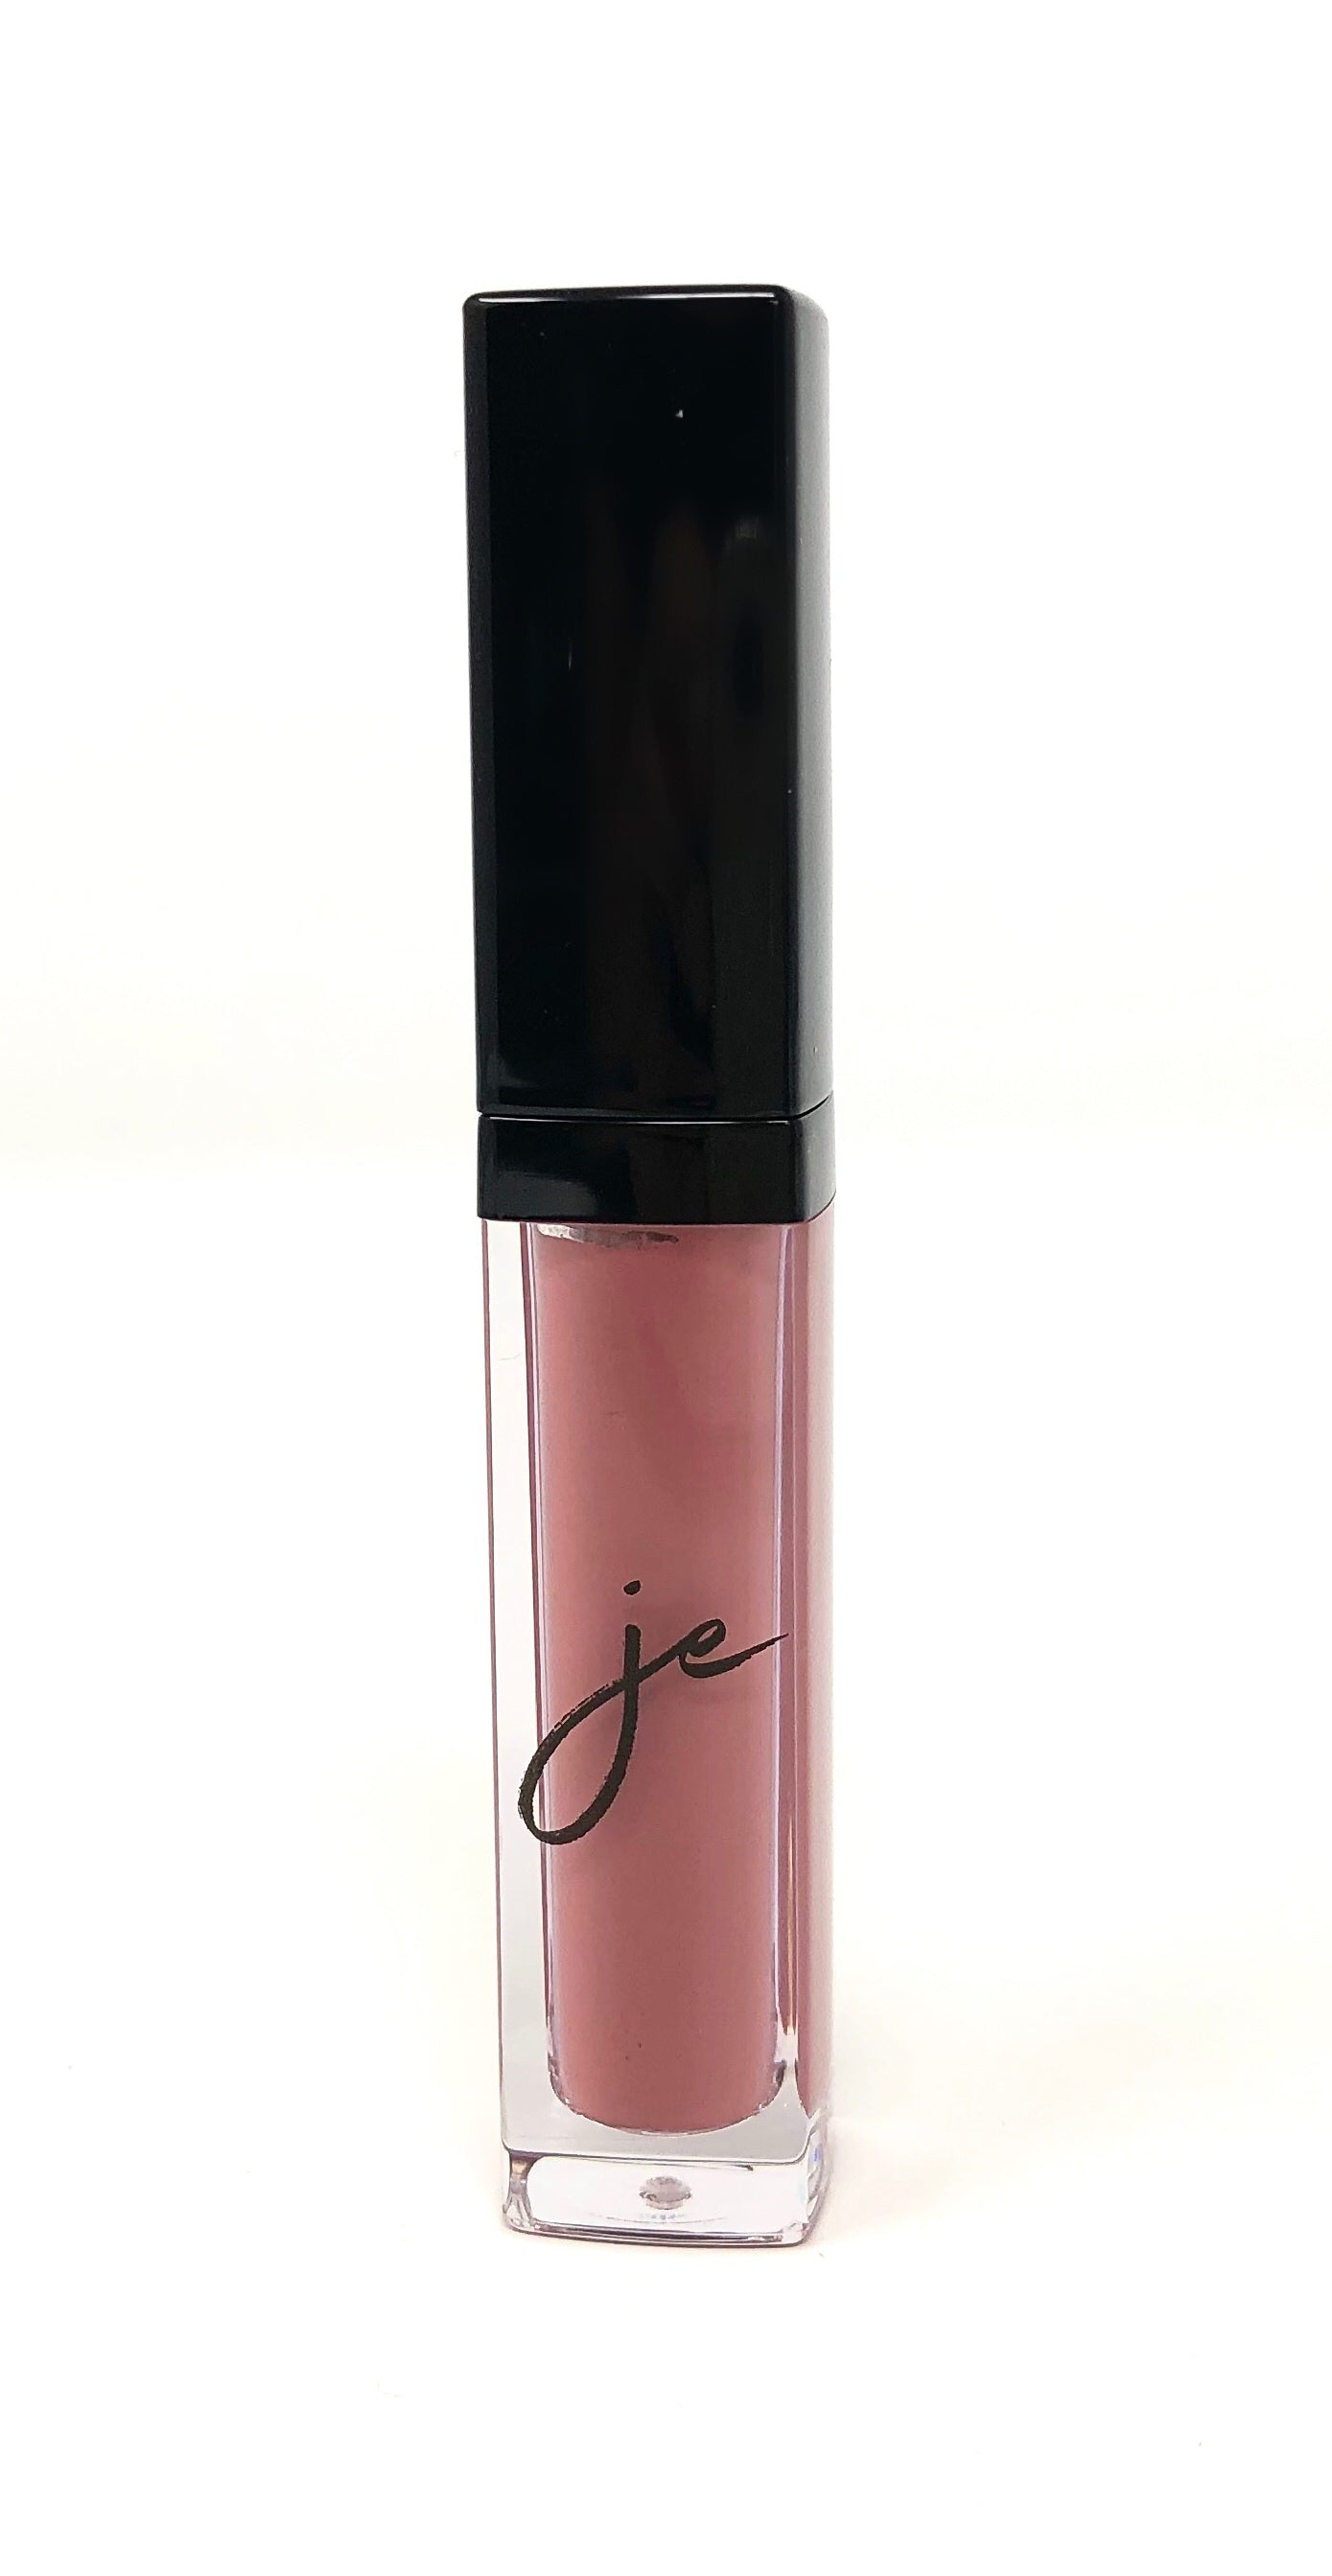 Velvet Liquid Lipstick - Beloved